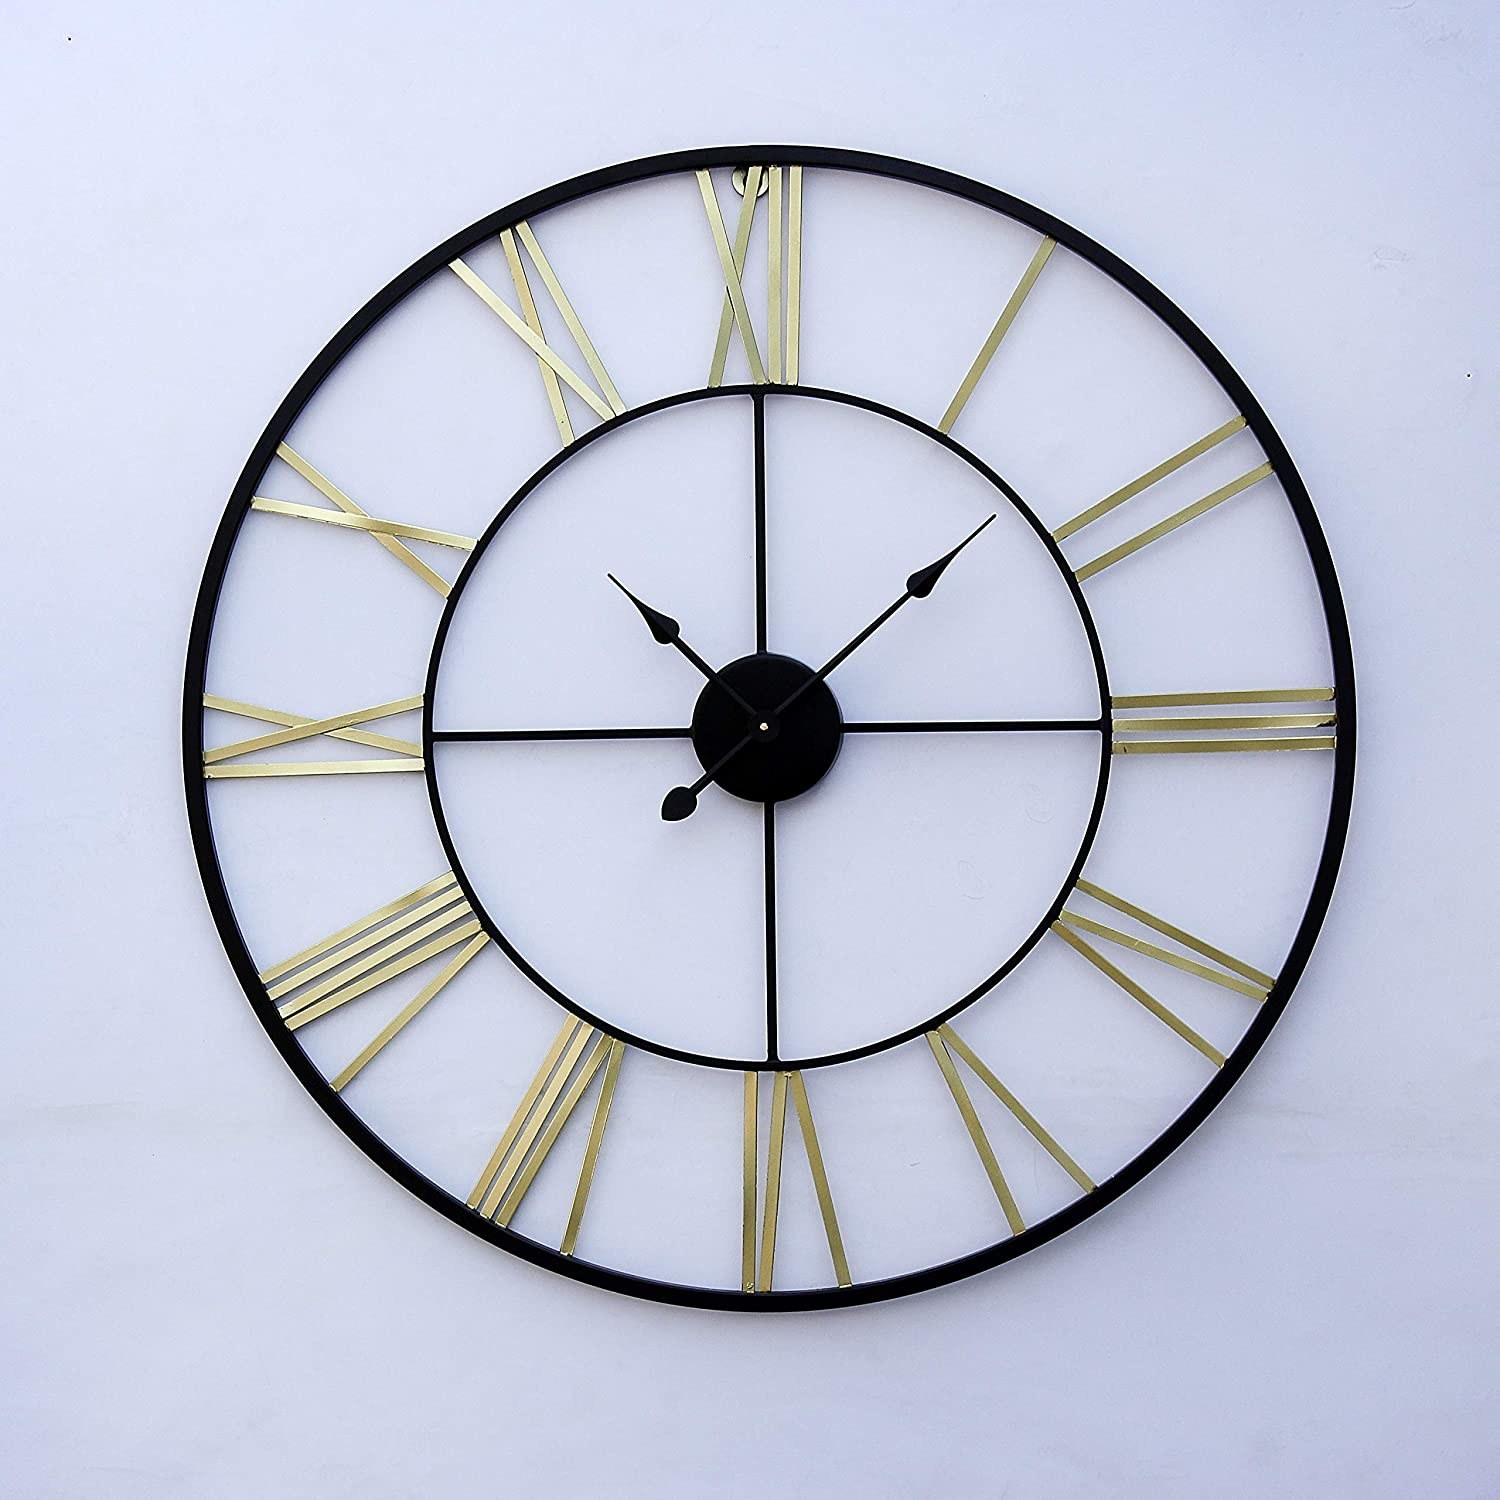 A large metal clock with a black frame and golden numericals, displayed against a white wall that works as its base